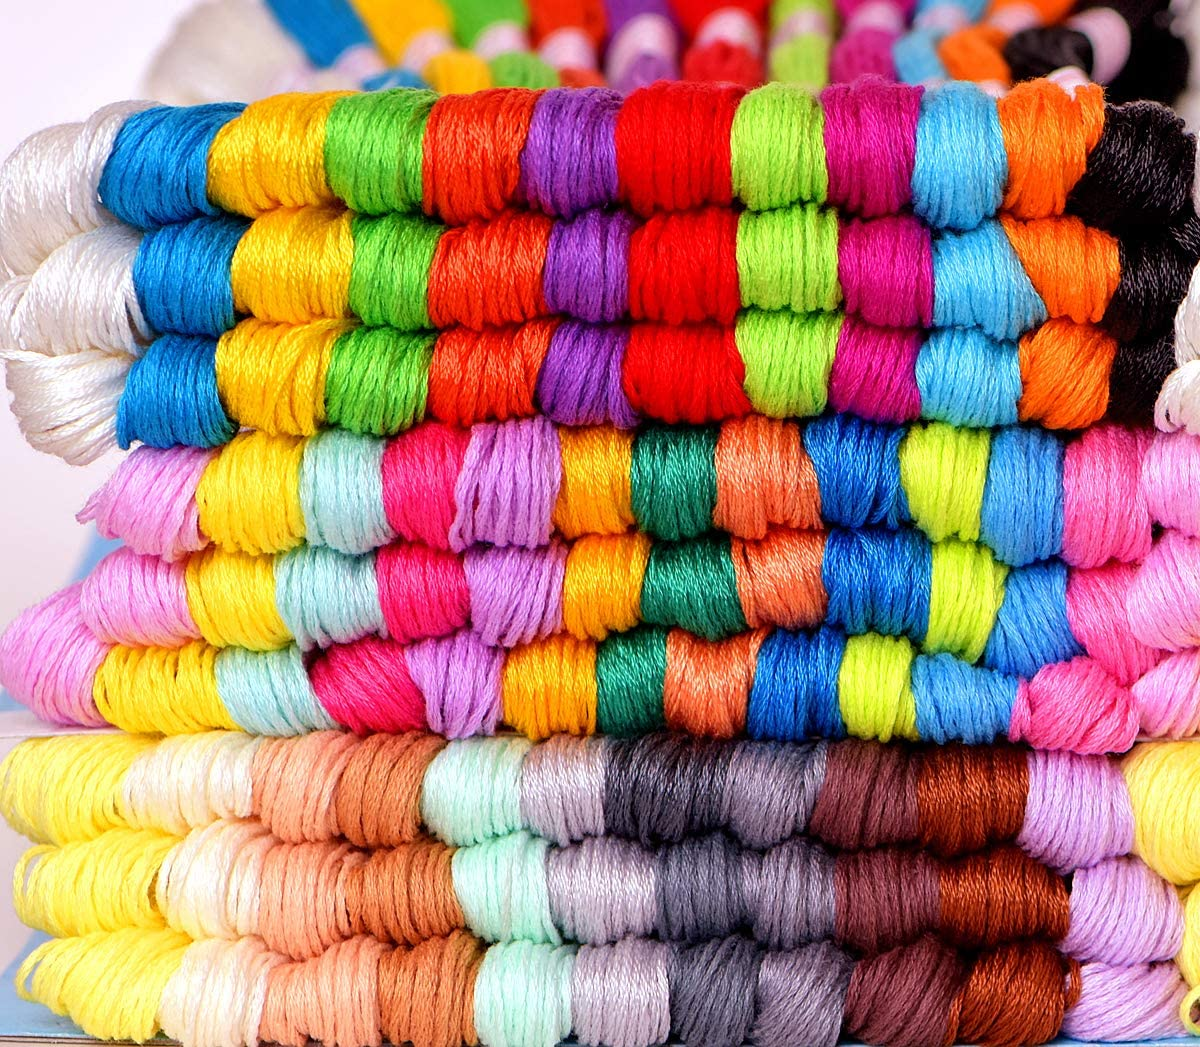 105 Skeins Per Pack and Free Set of 30 Embroidery Needles and 2 Needle Threaders Cross Stitch Threads Premium Vibrant Rainbow Color Embroidery Floss Friendship Bracelets Floss Crafts Floss